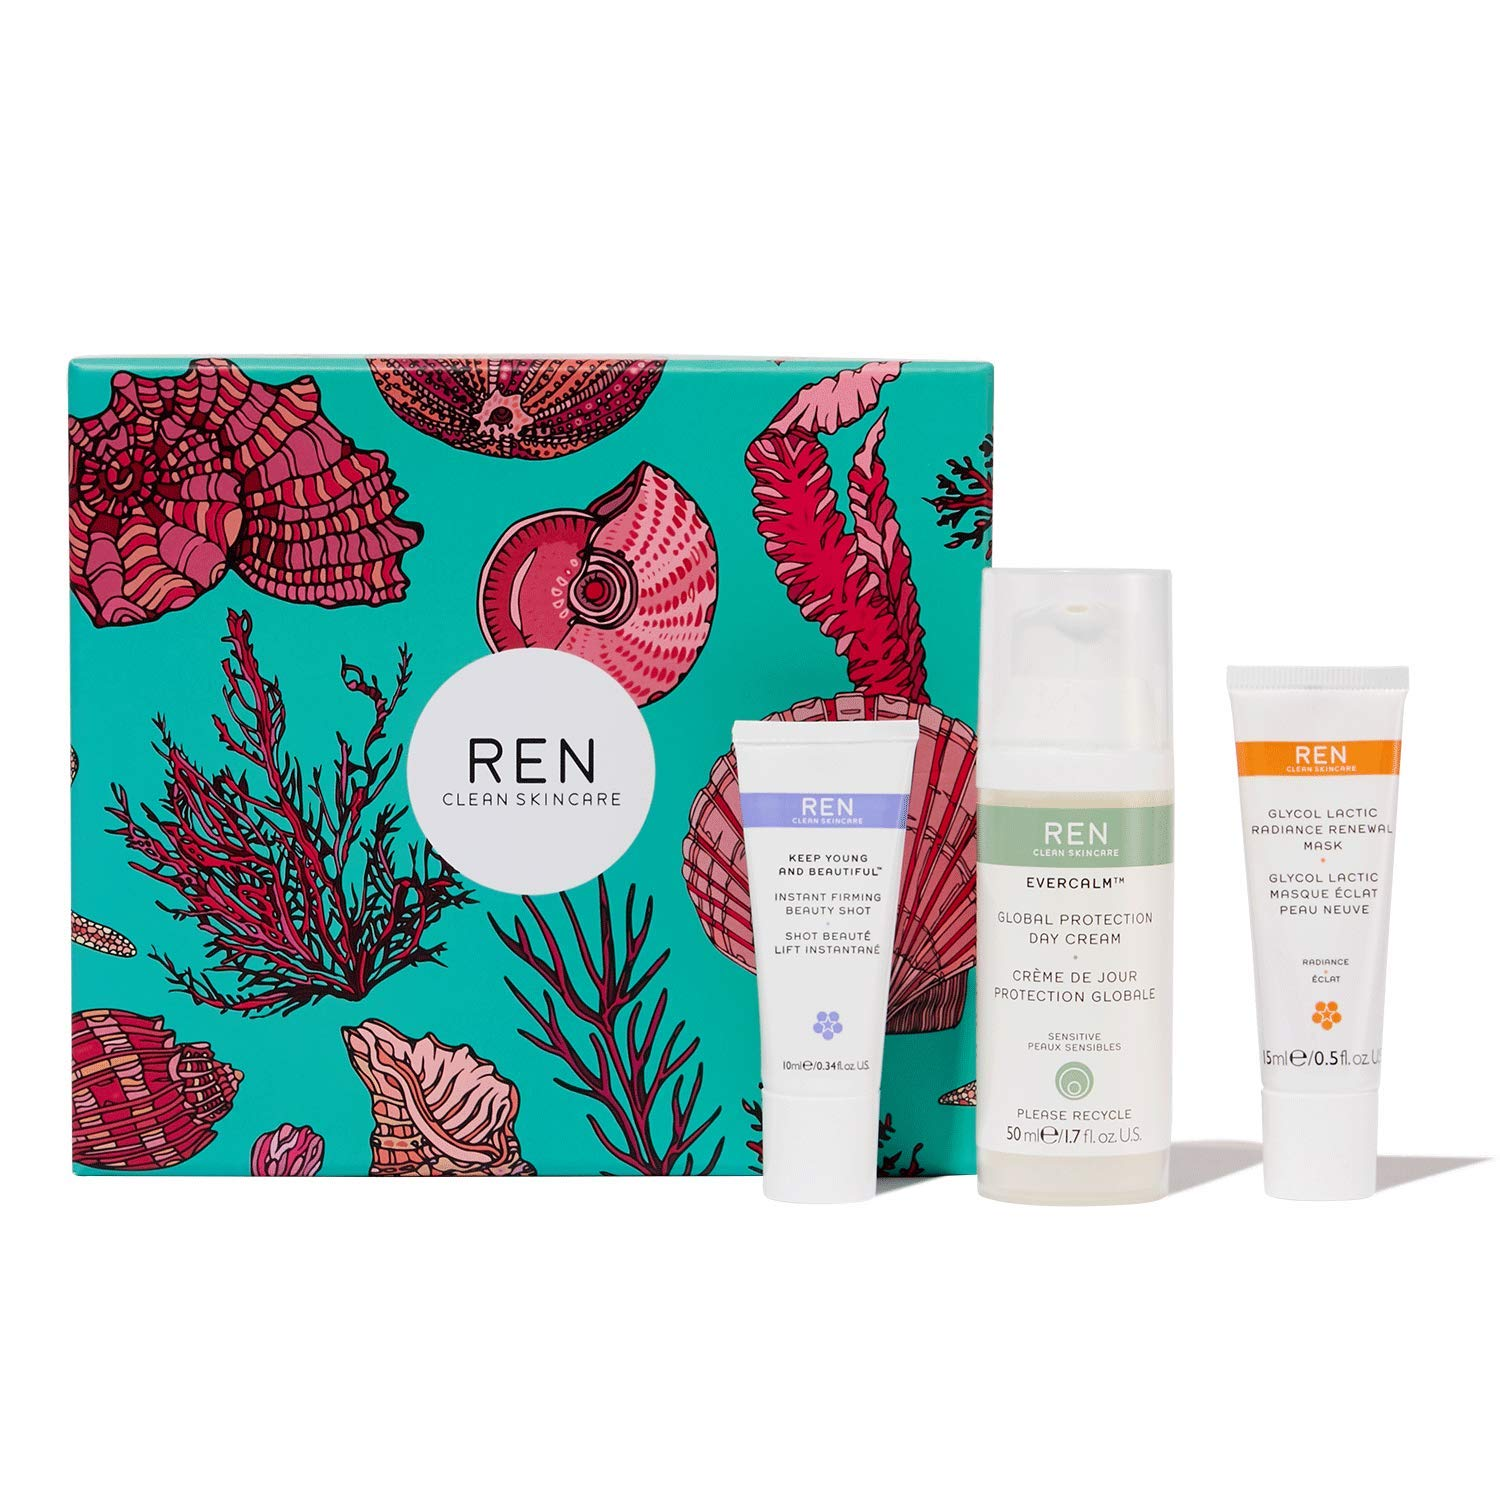 REN Clean Skincare Evercalm Face Favorites Gift Set ($86 Value) Evercalm Global Protection Day Cream + Glycol Lactic Radiance Renewal Mask And Keep Young & Beautiful Instant Firming Beauty Shot